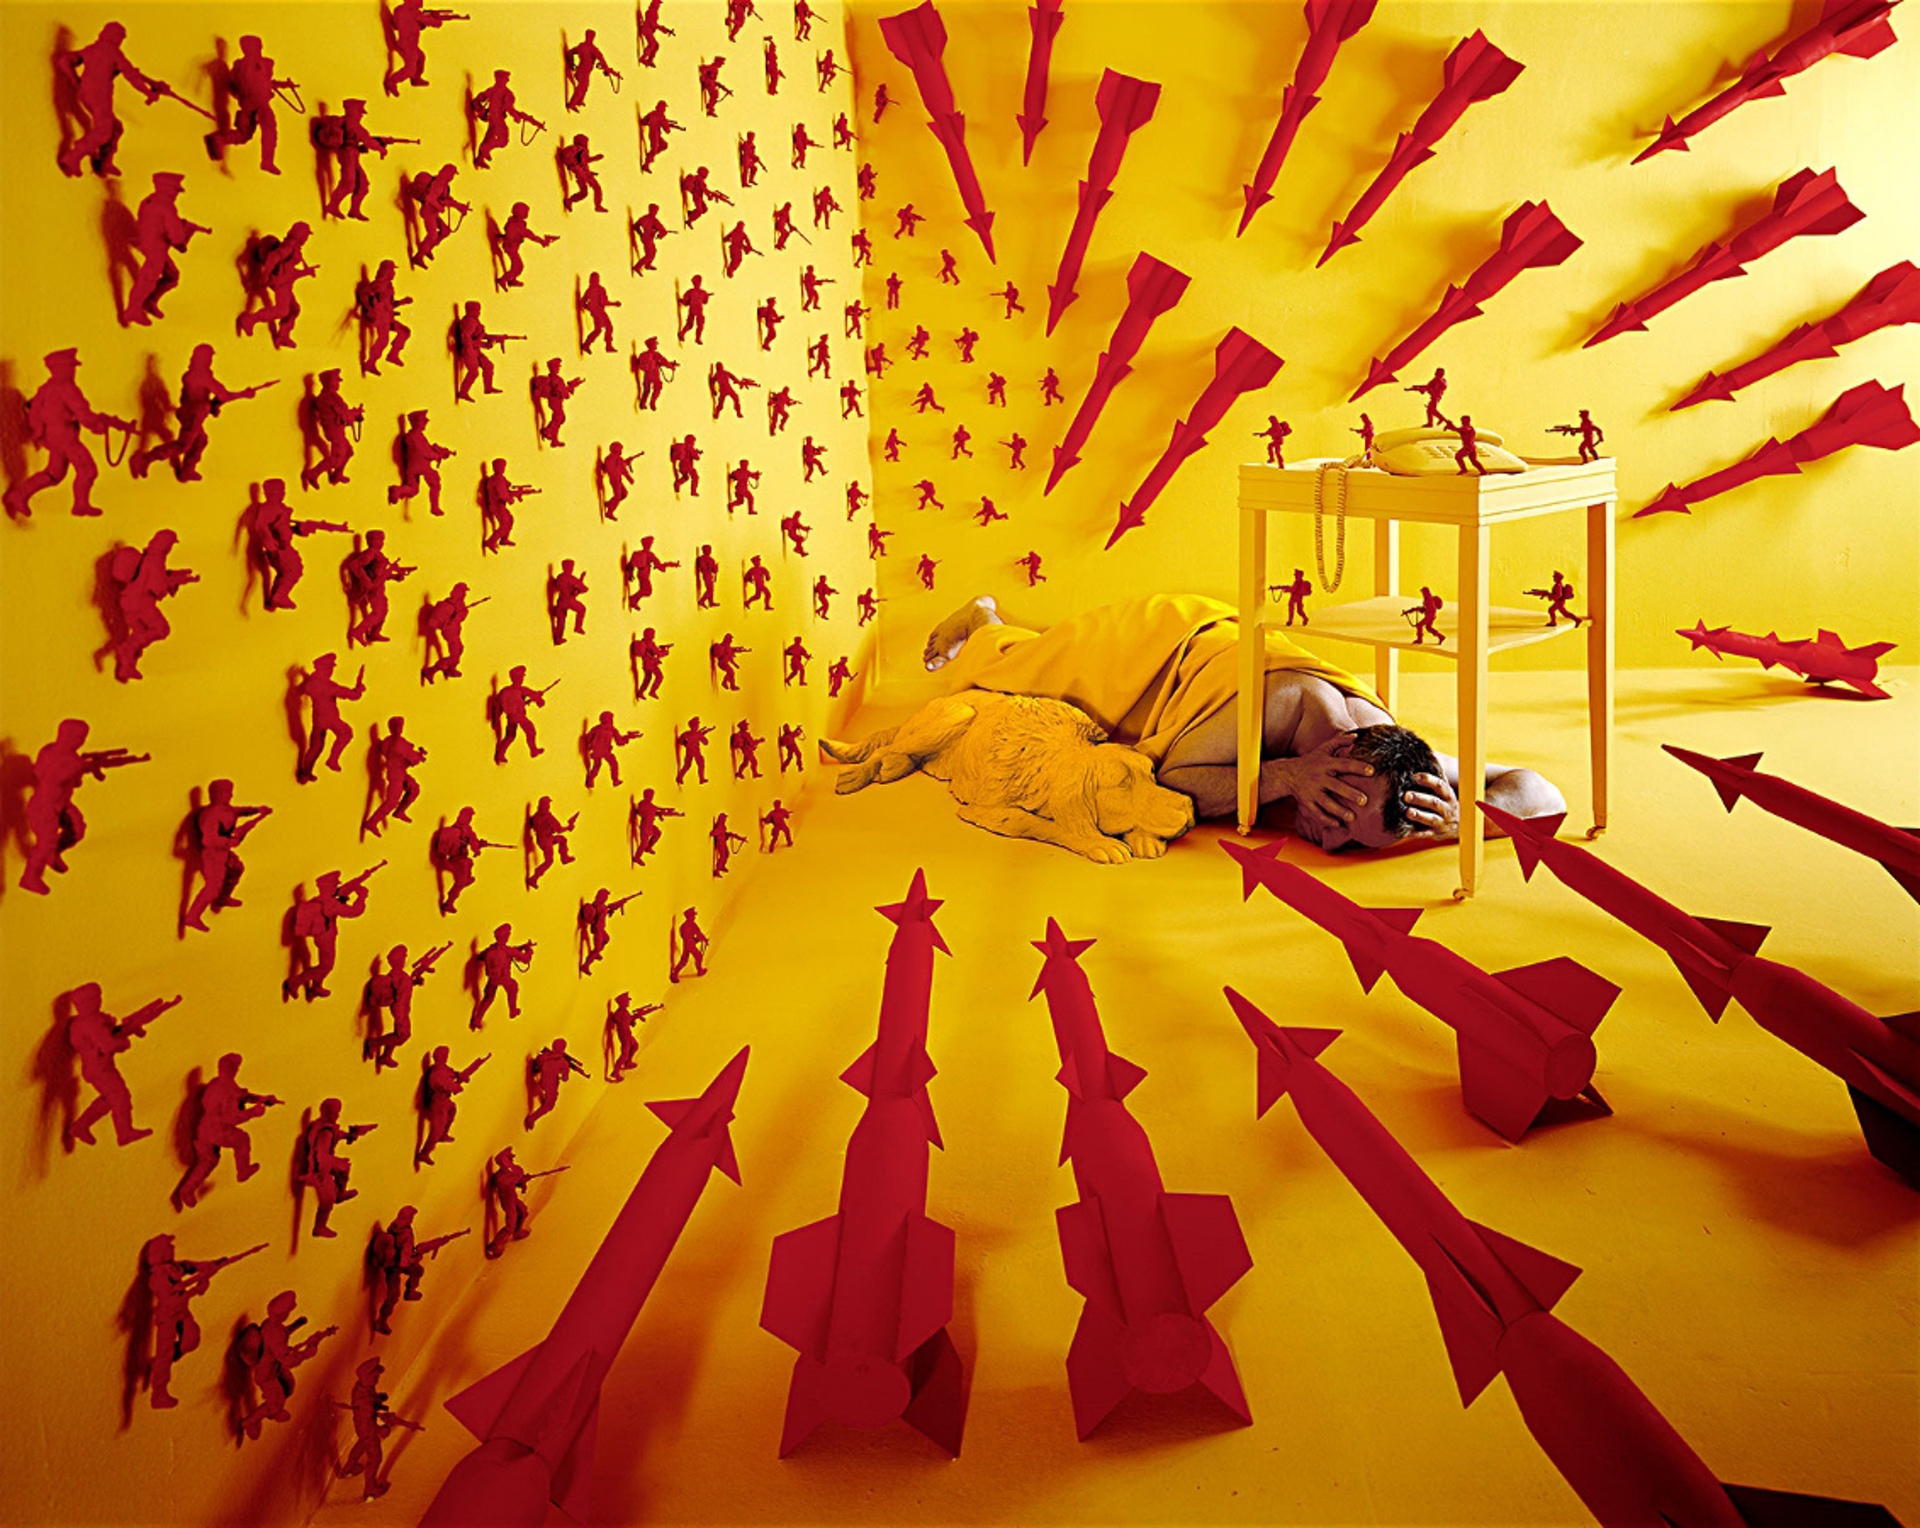 The Cold War (1999) by Sandy Skoglund - Pako Campo